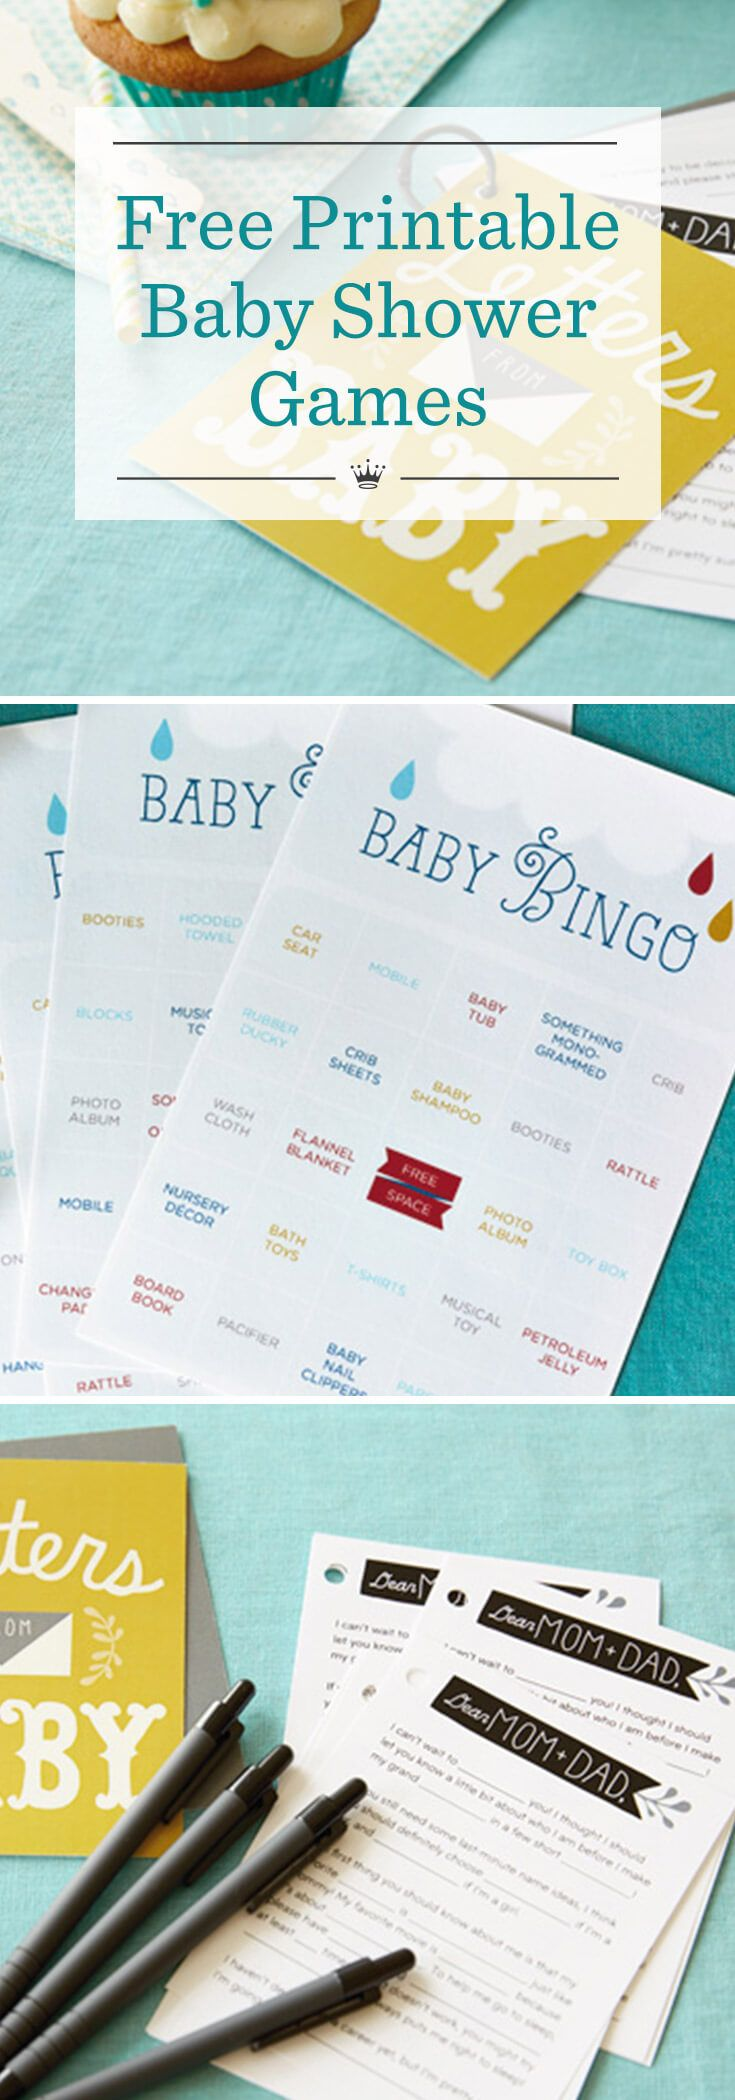 Free printable baby shower games Baby keepsake book, Fun